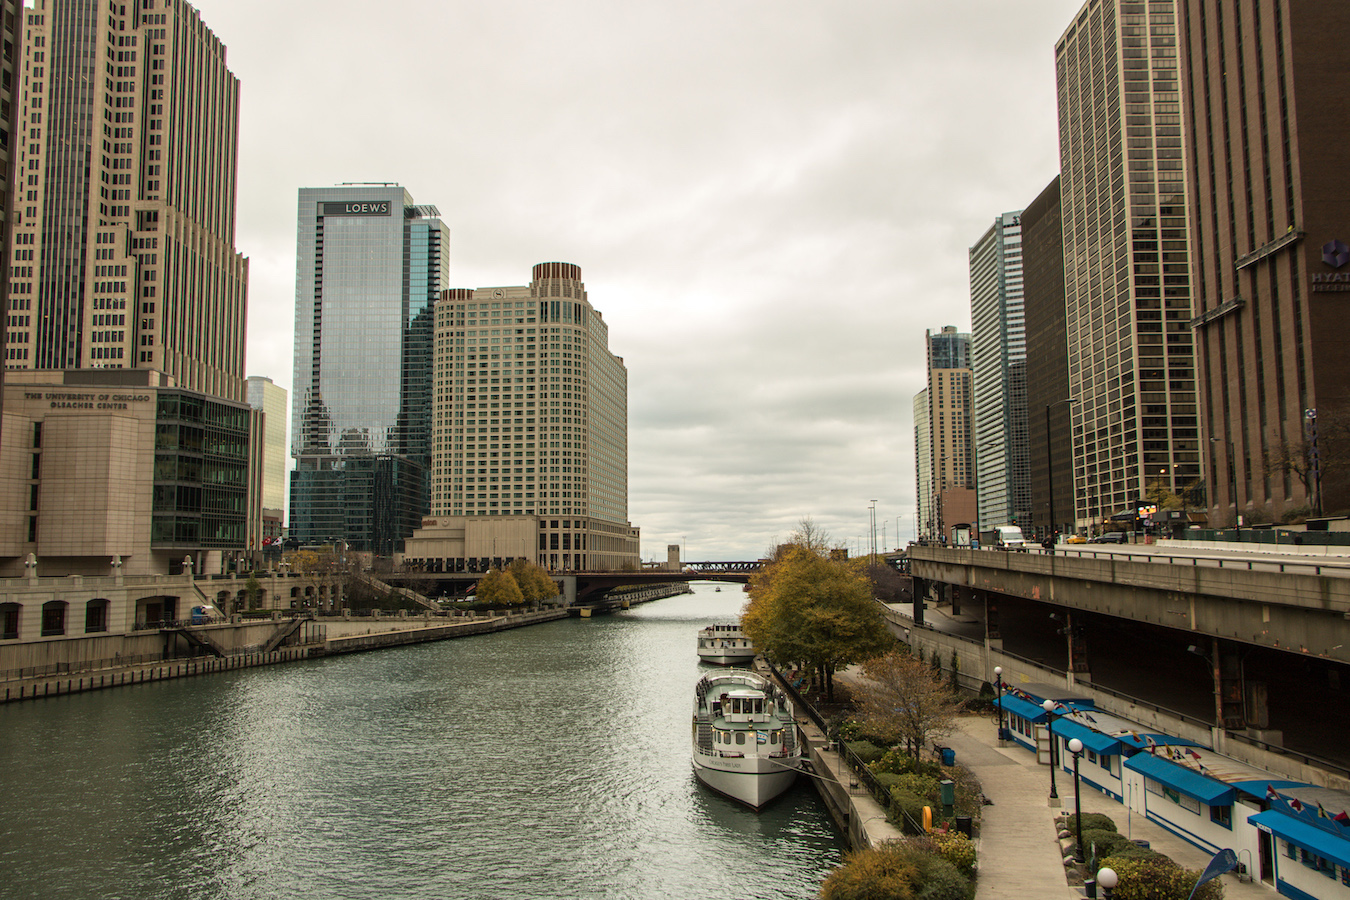 View to the east at the Chicago river